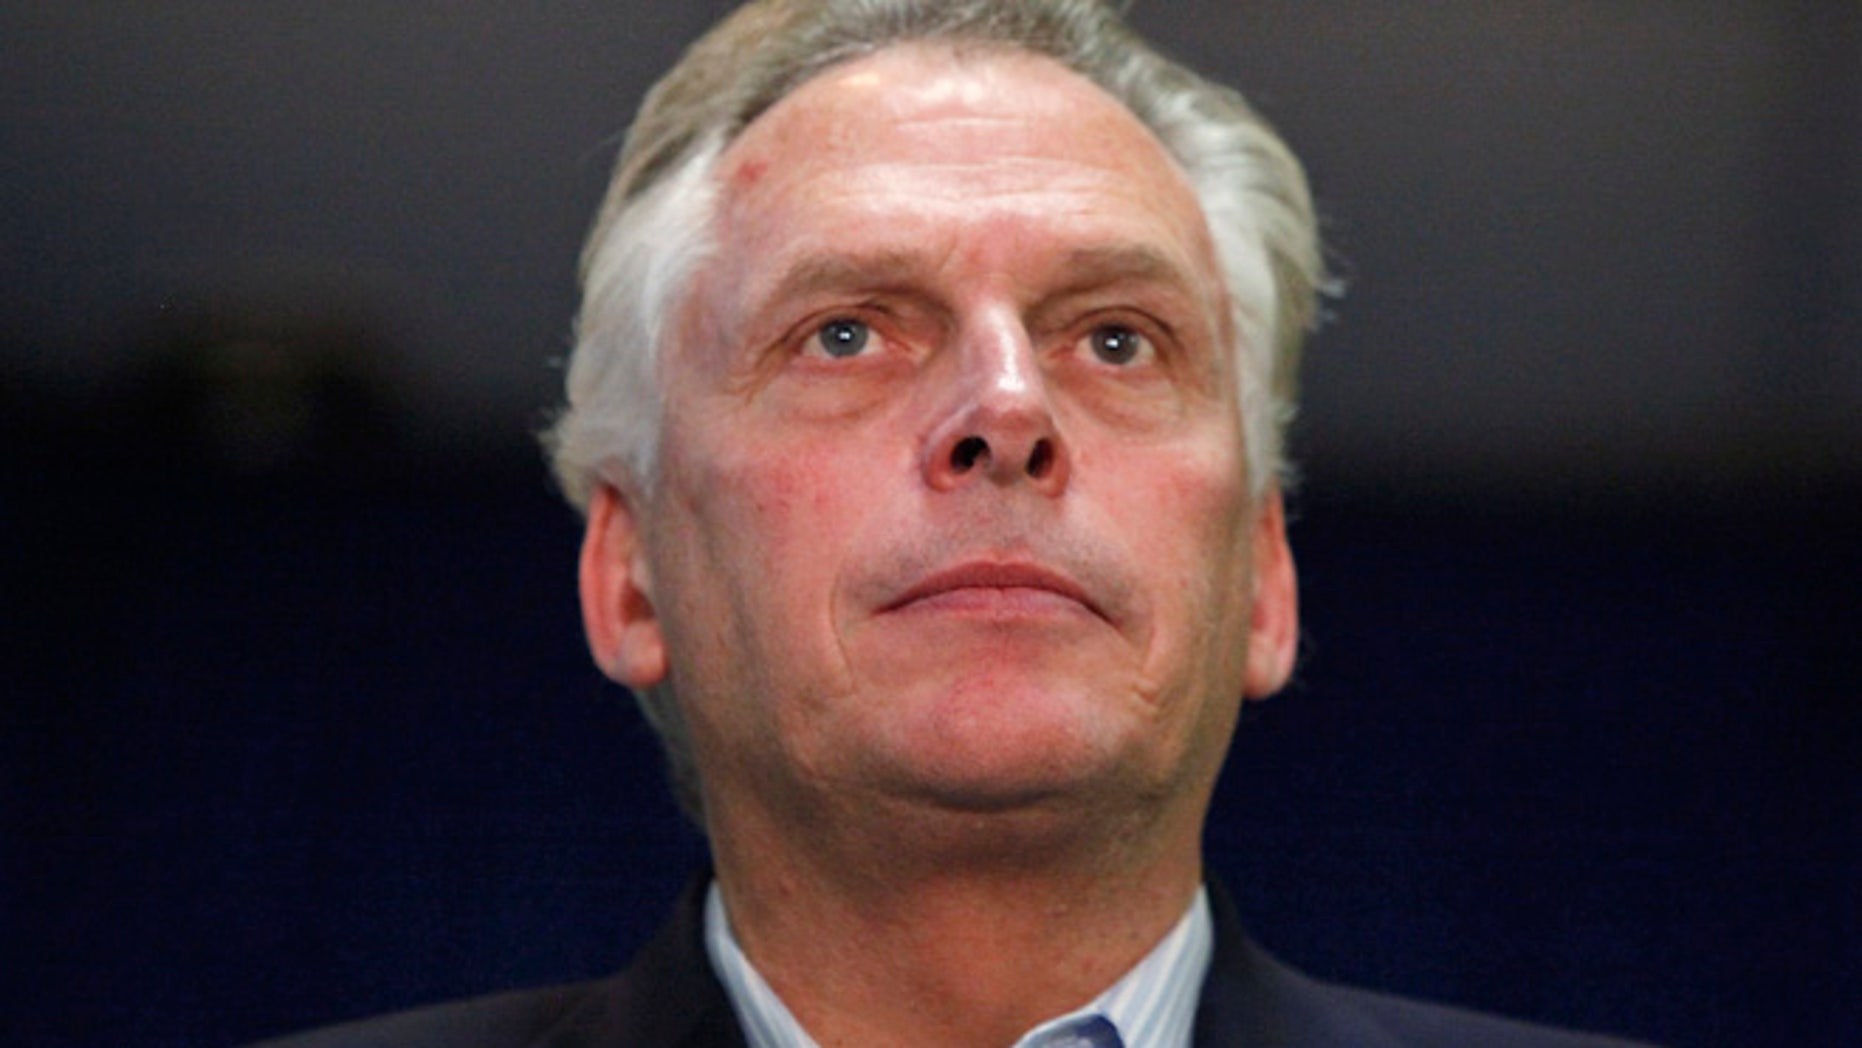 Gov. Terry McAuliffe's action restoring the voting rights of more than 200,000 felons was unconstitutional, Virginia's highest court ruled Friday